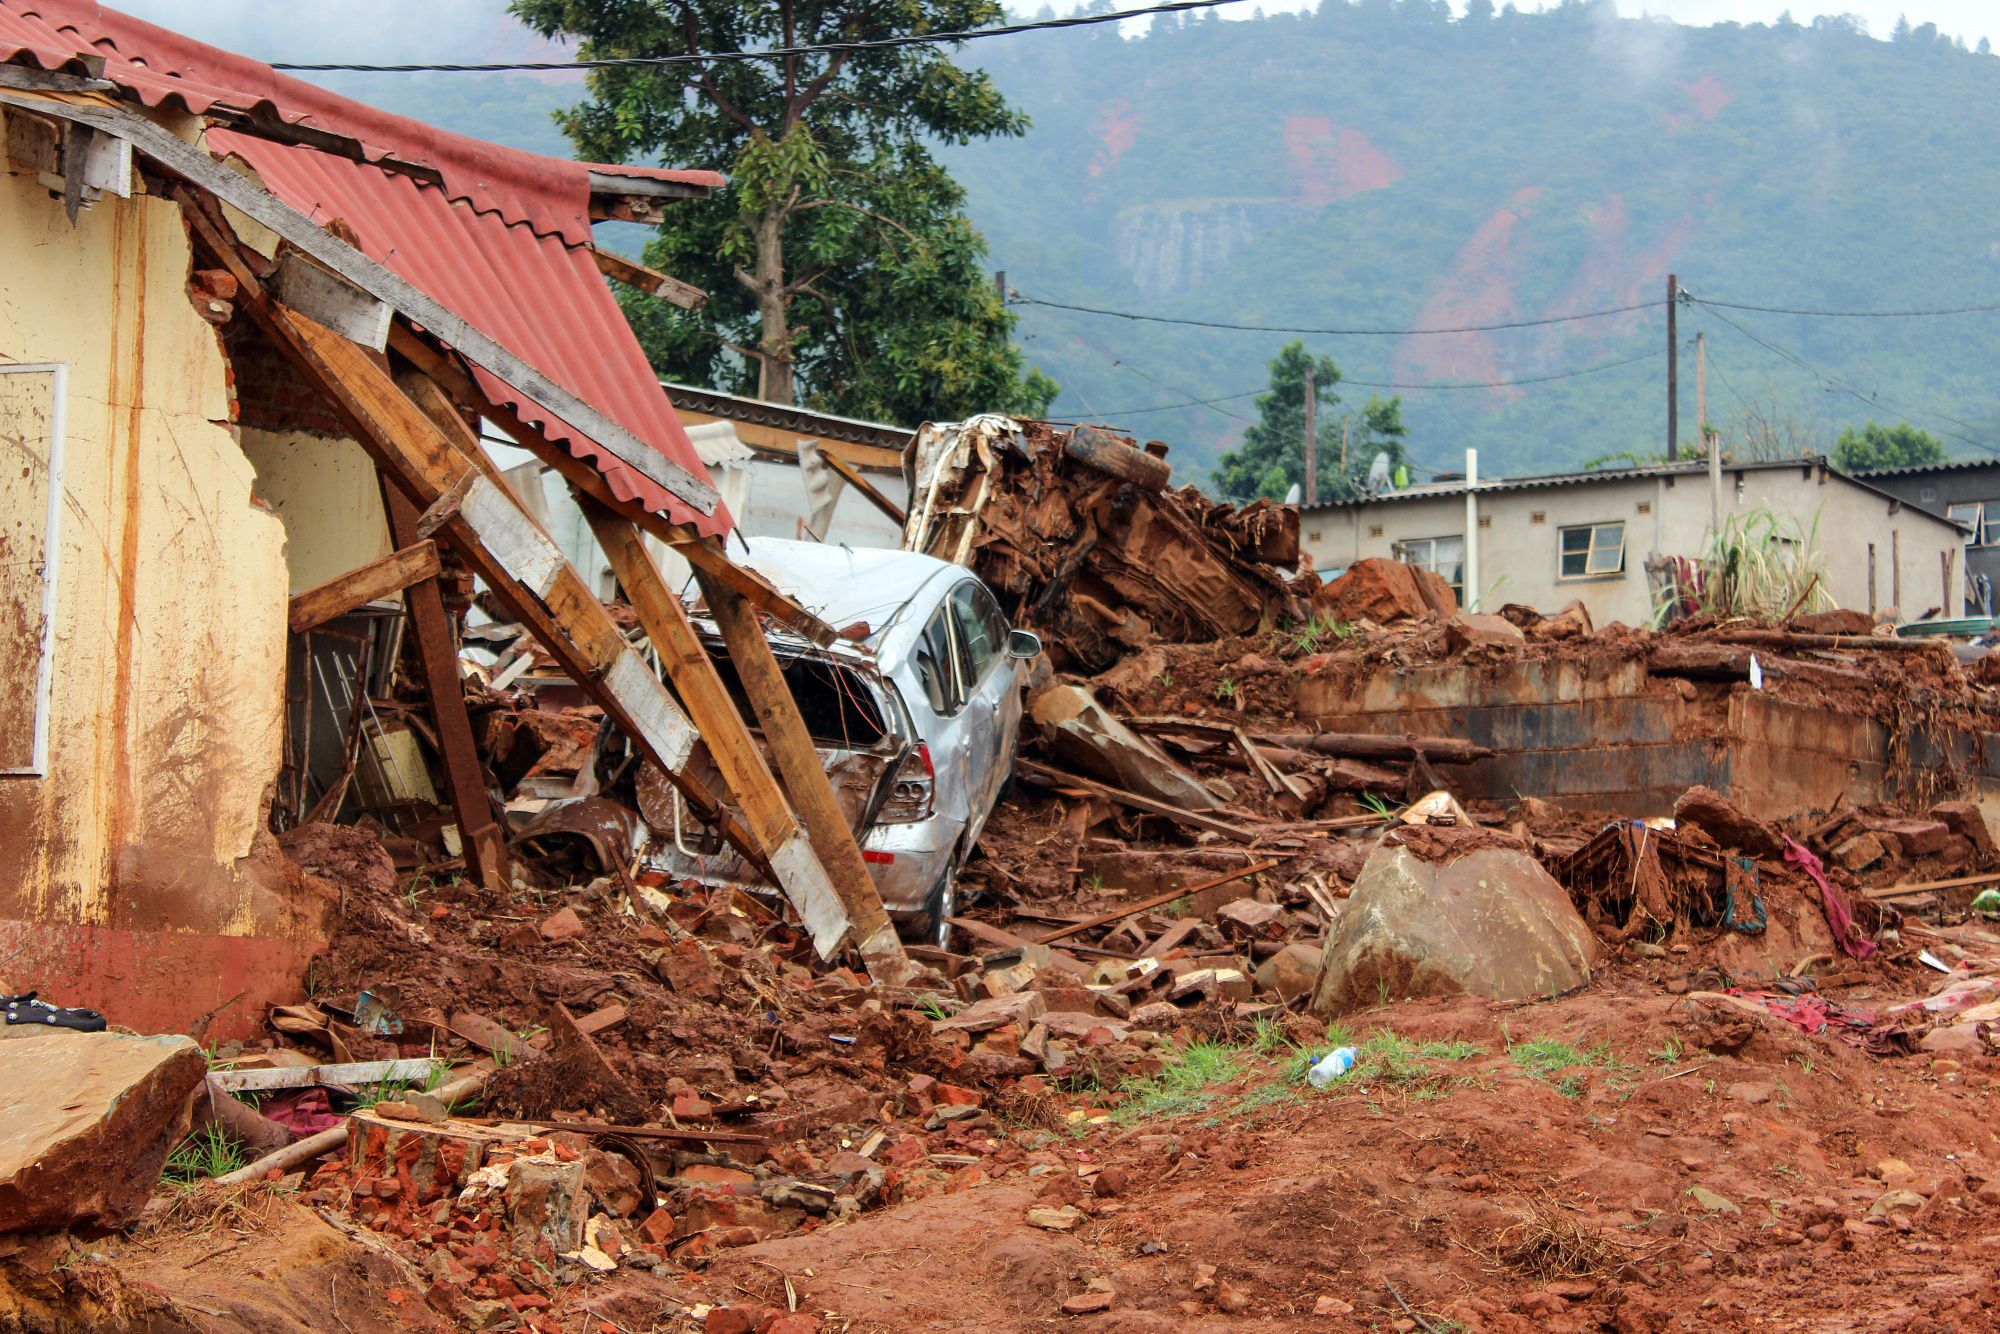 A residential house lays destroyed following a landslide in Ngangu, Chimanimani, Zimbabwe, on April 13, 2019. MUST CREDIT: Bloomberg photo by Brian Latham.